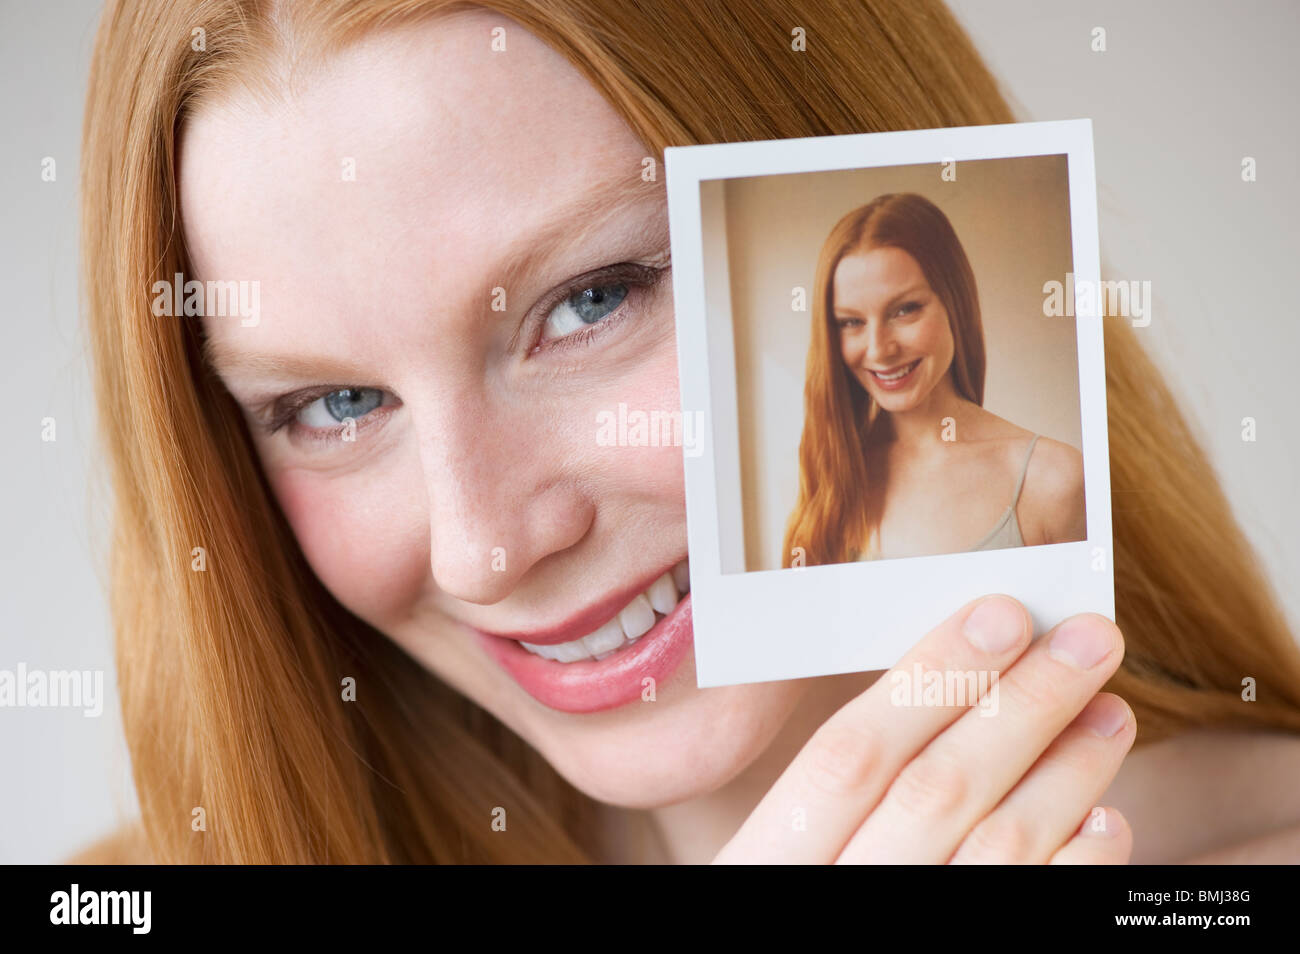 Woman holding a photograph of herself - Stock Image